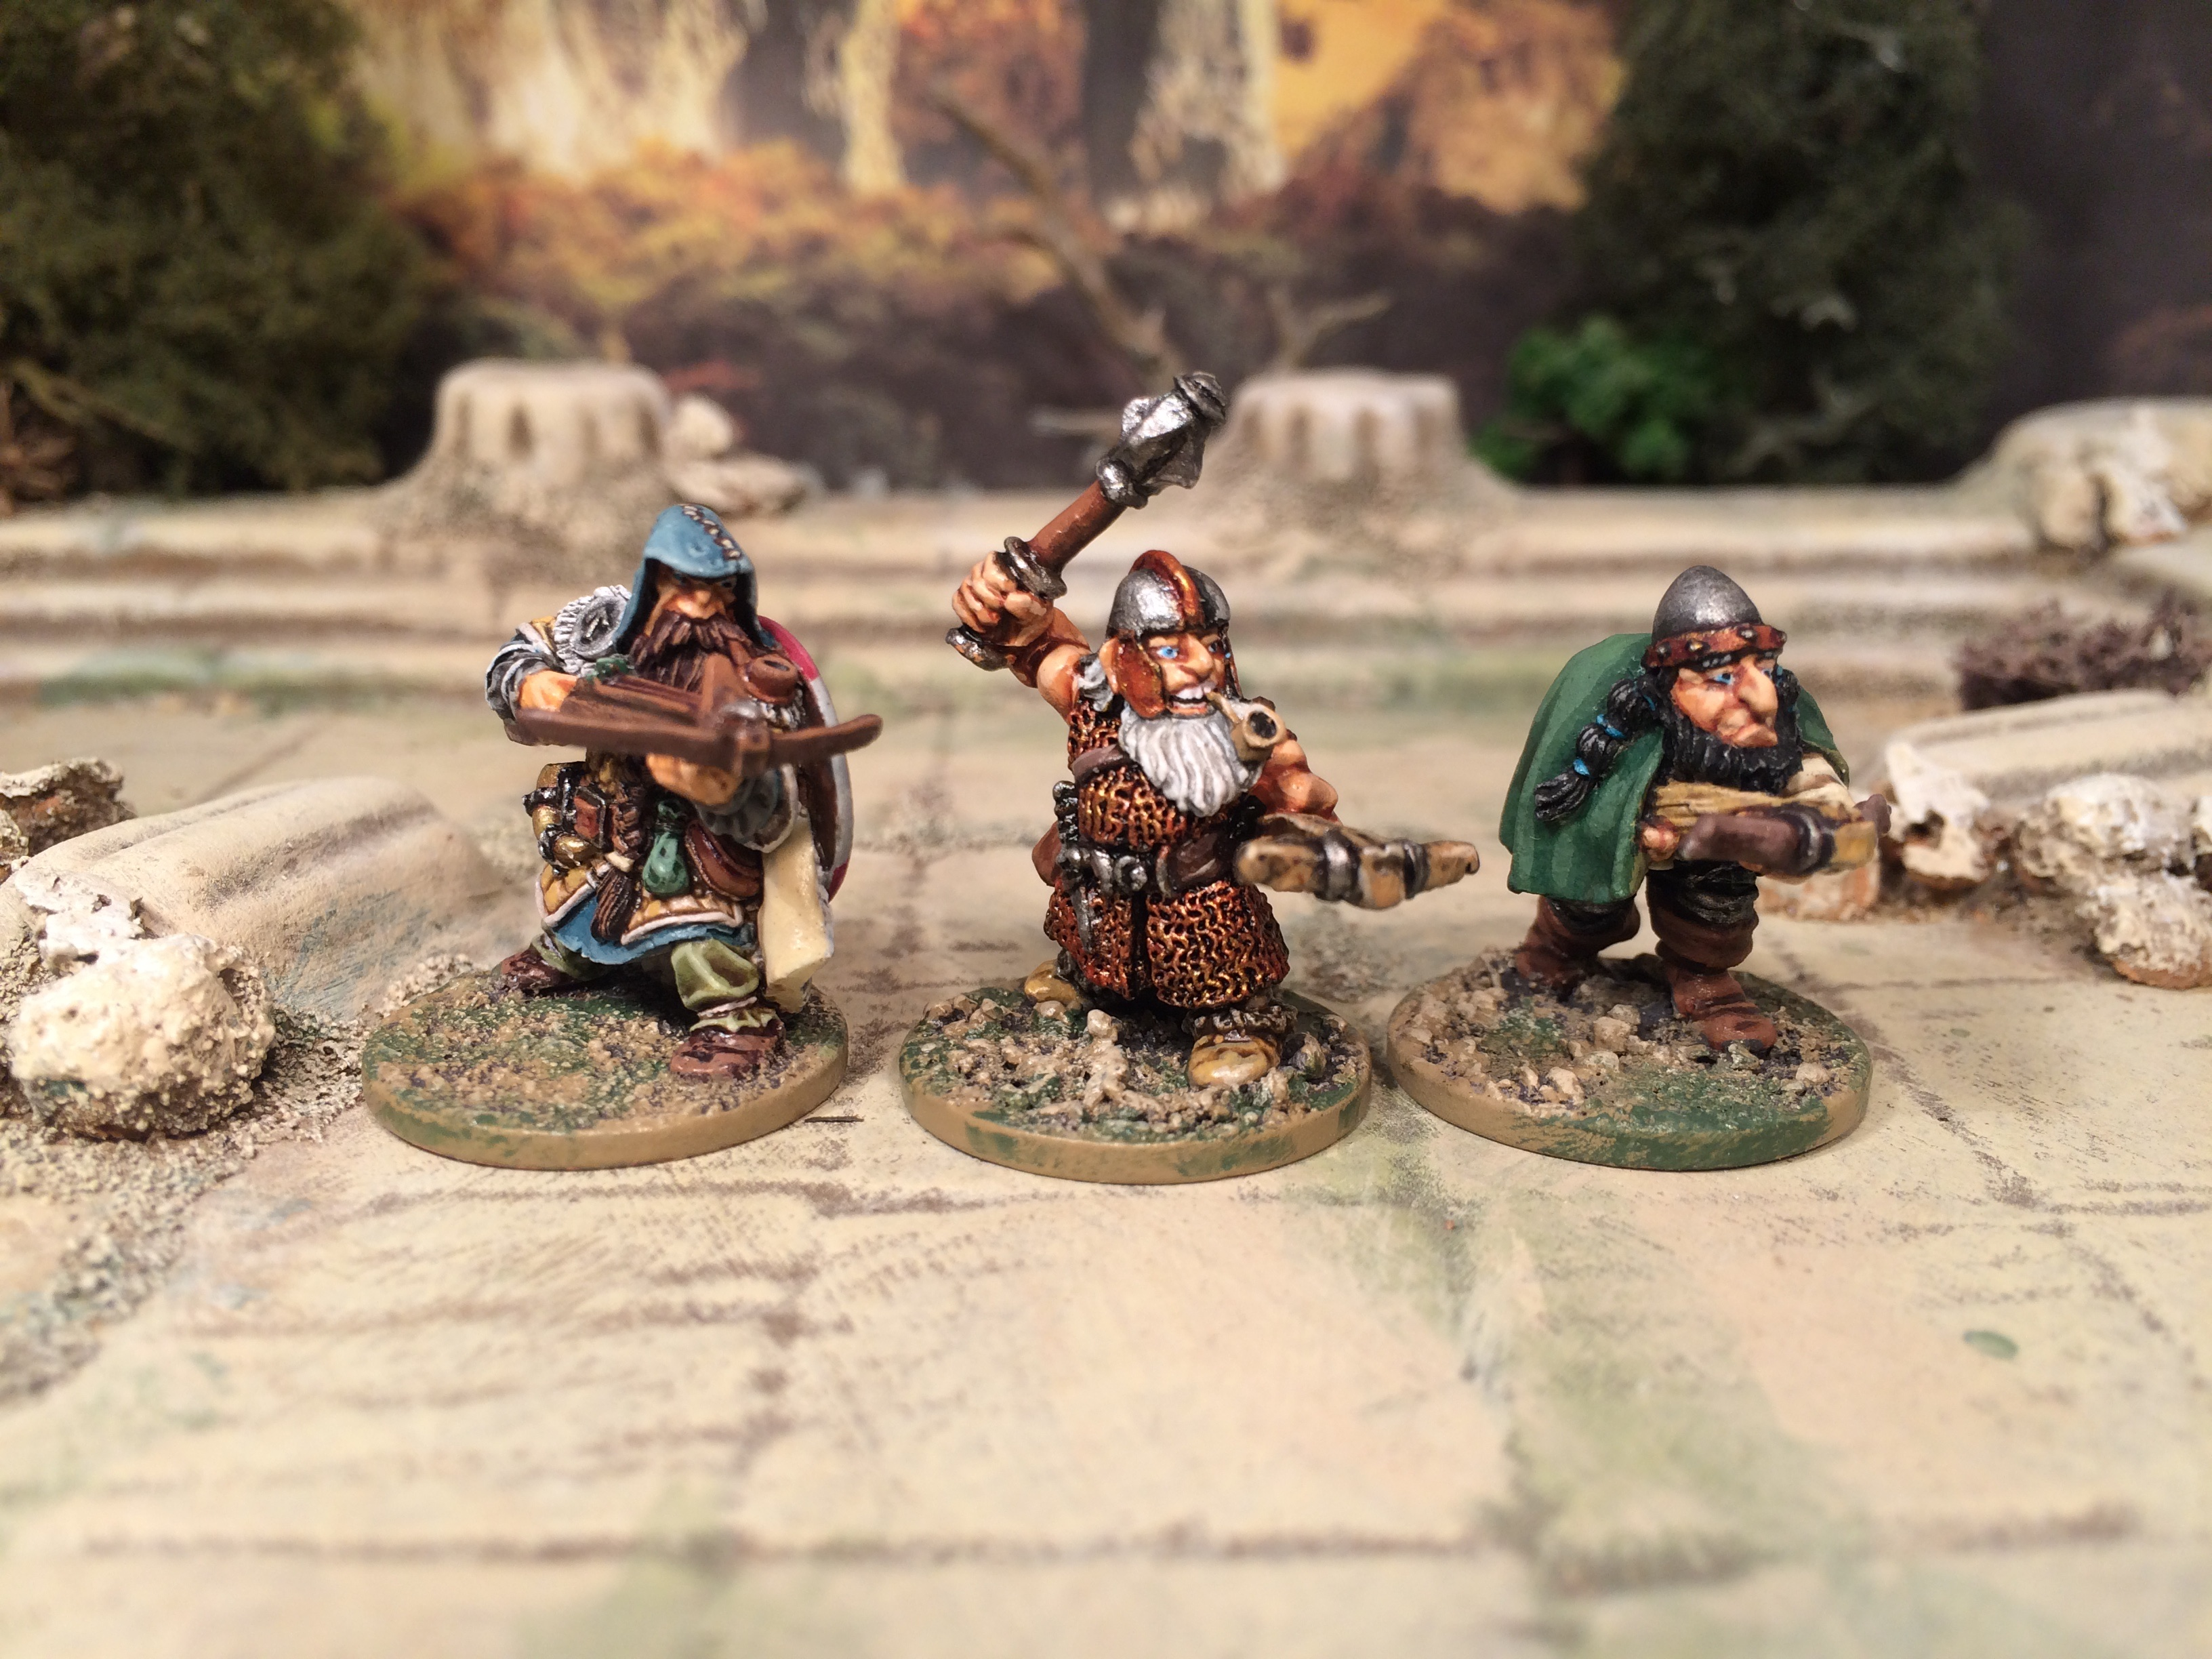 Old Hammer Games Workshop Citadel Dwarf Hasslefree Miniatures Dwarf with Crossbow